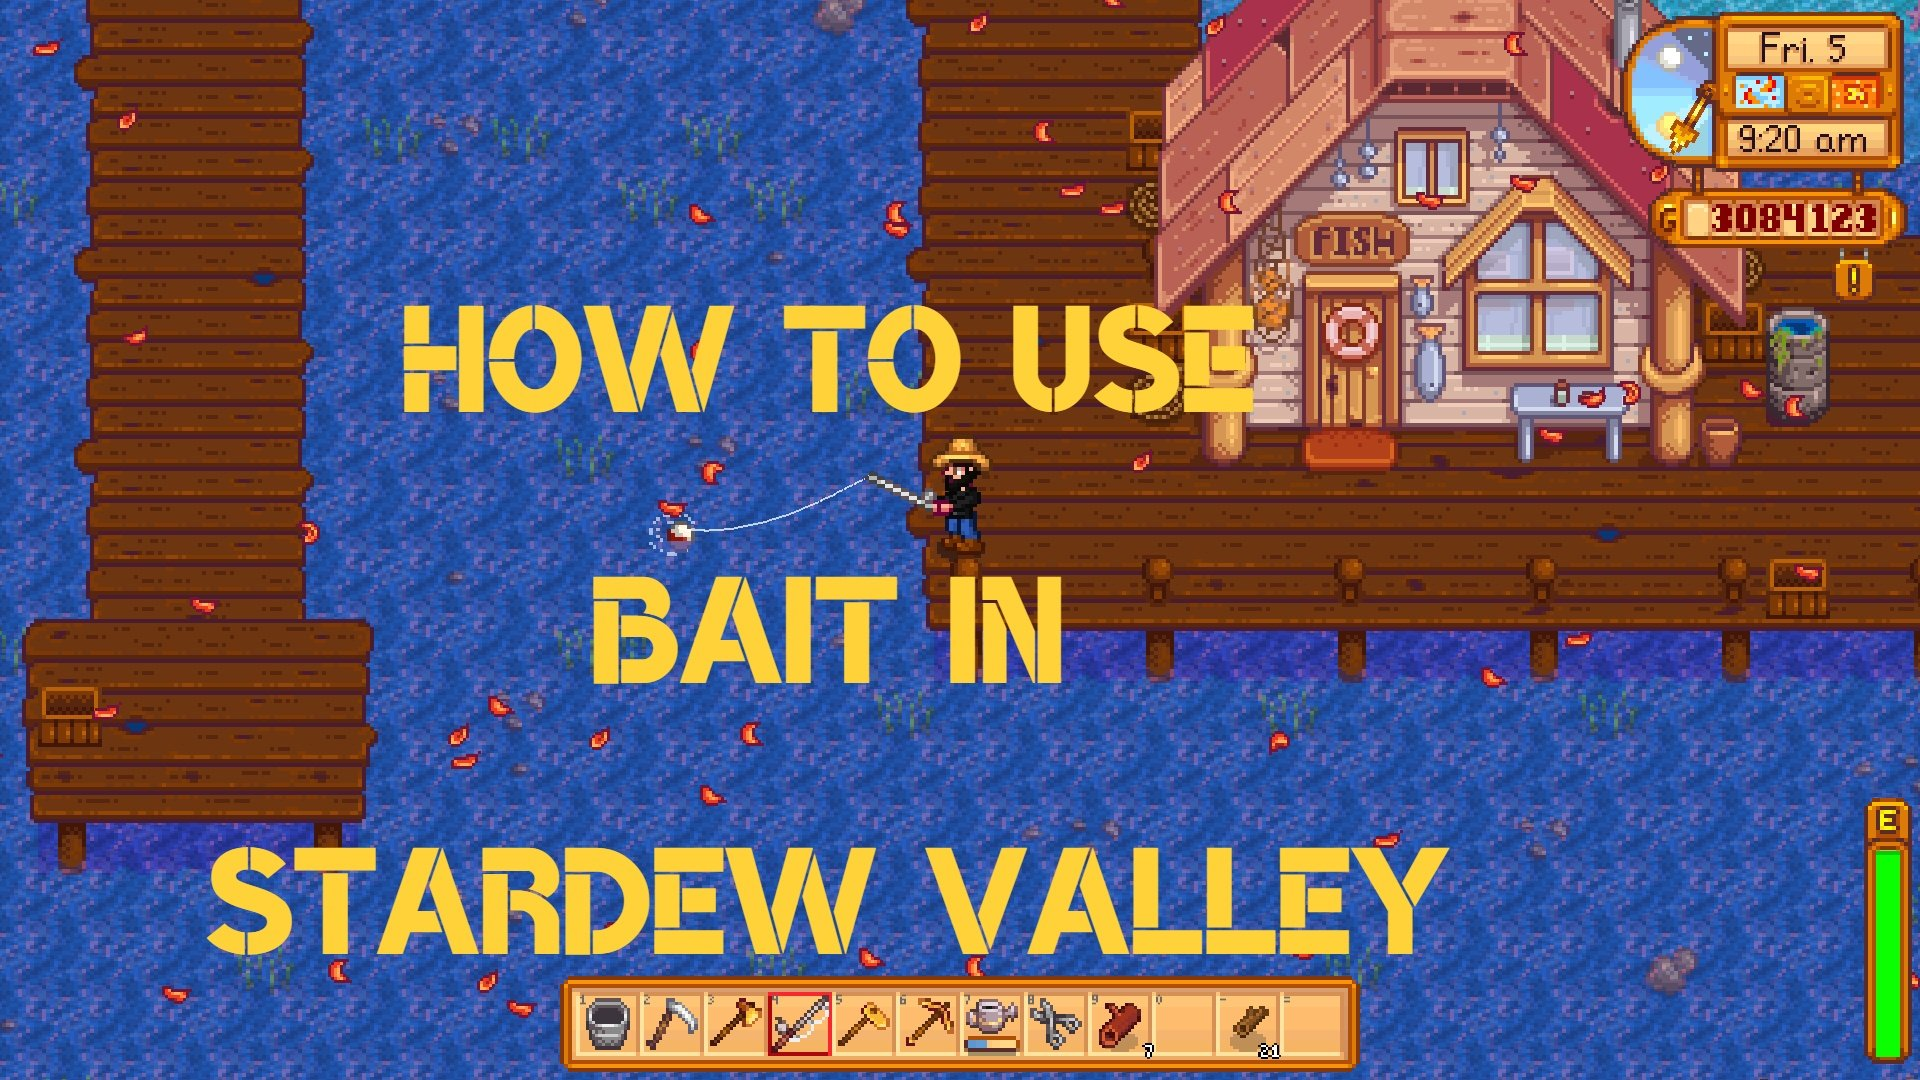 Stardew Valley How to Use Bait